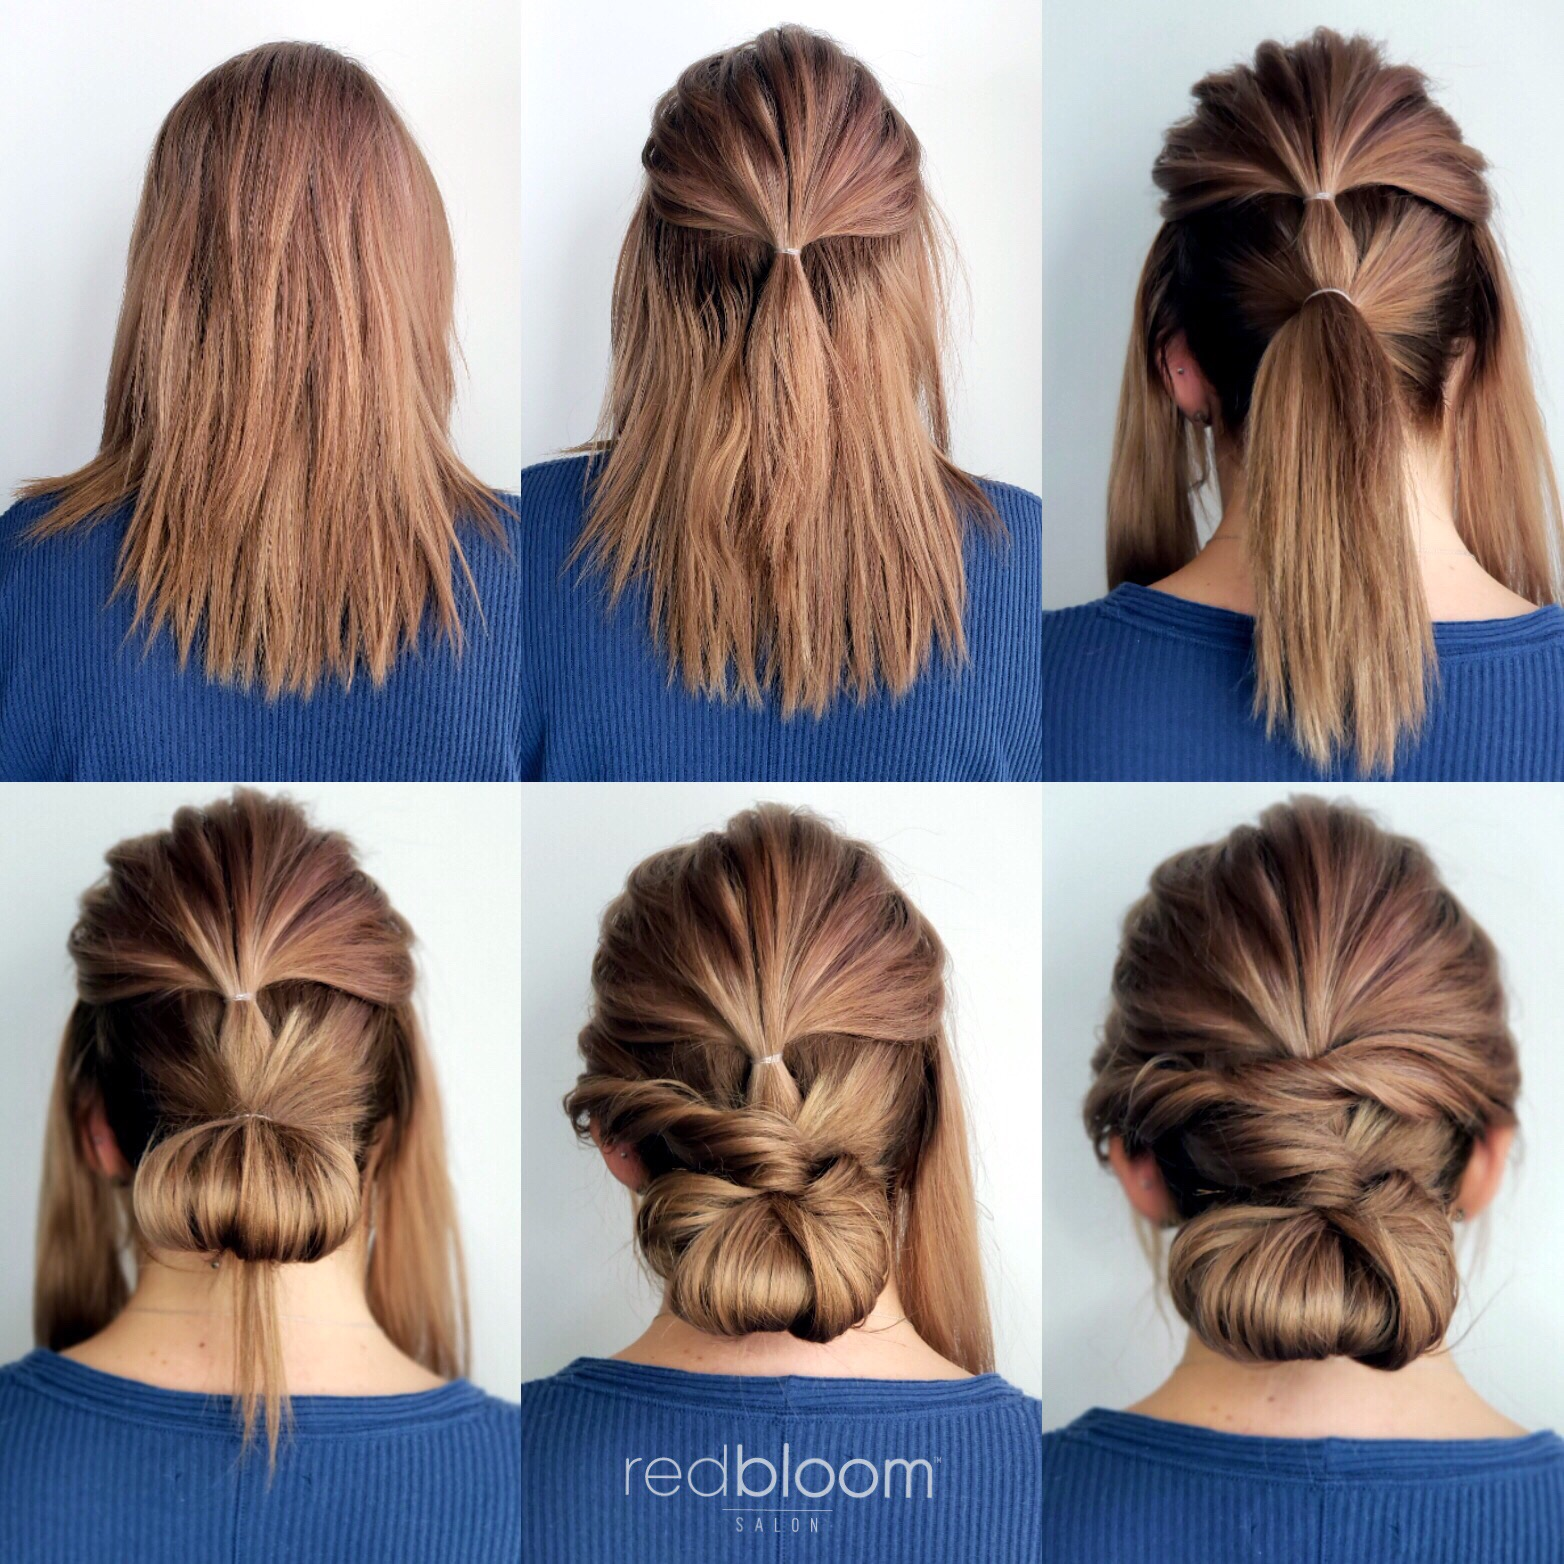 updo step-by-step